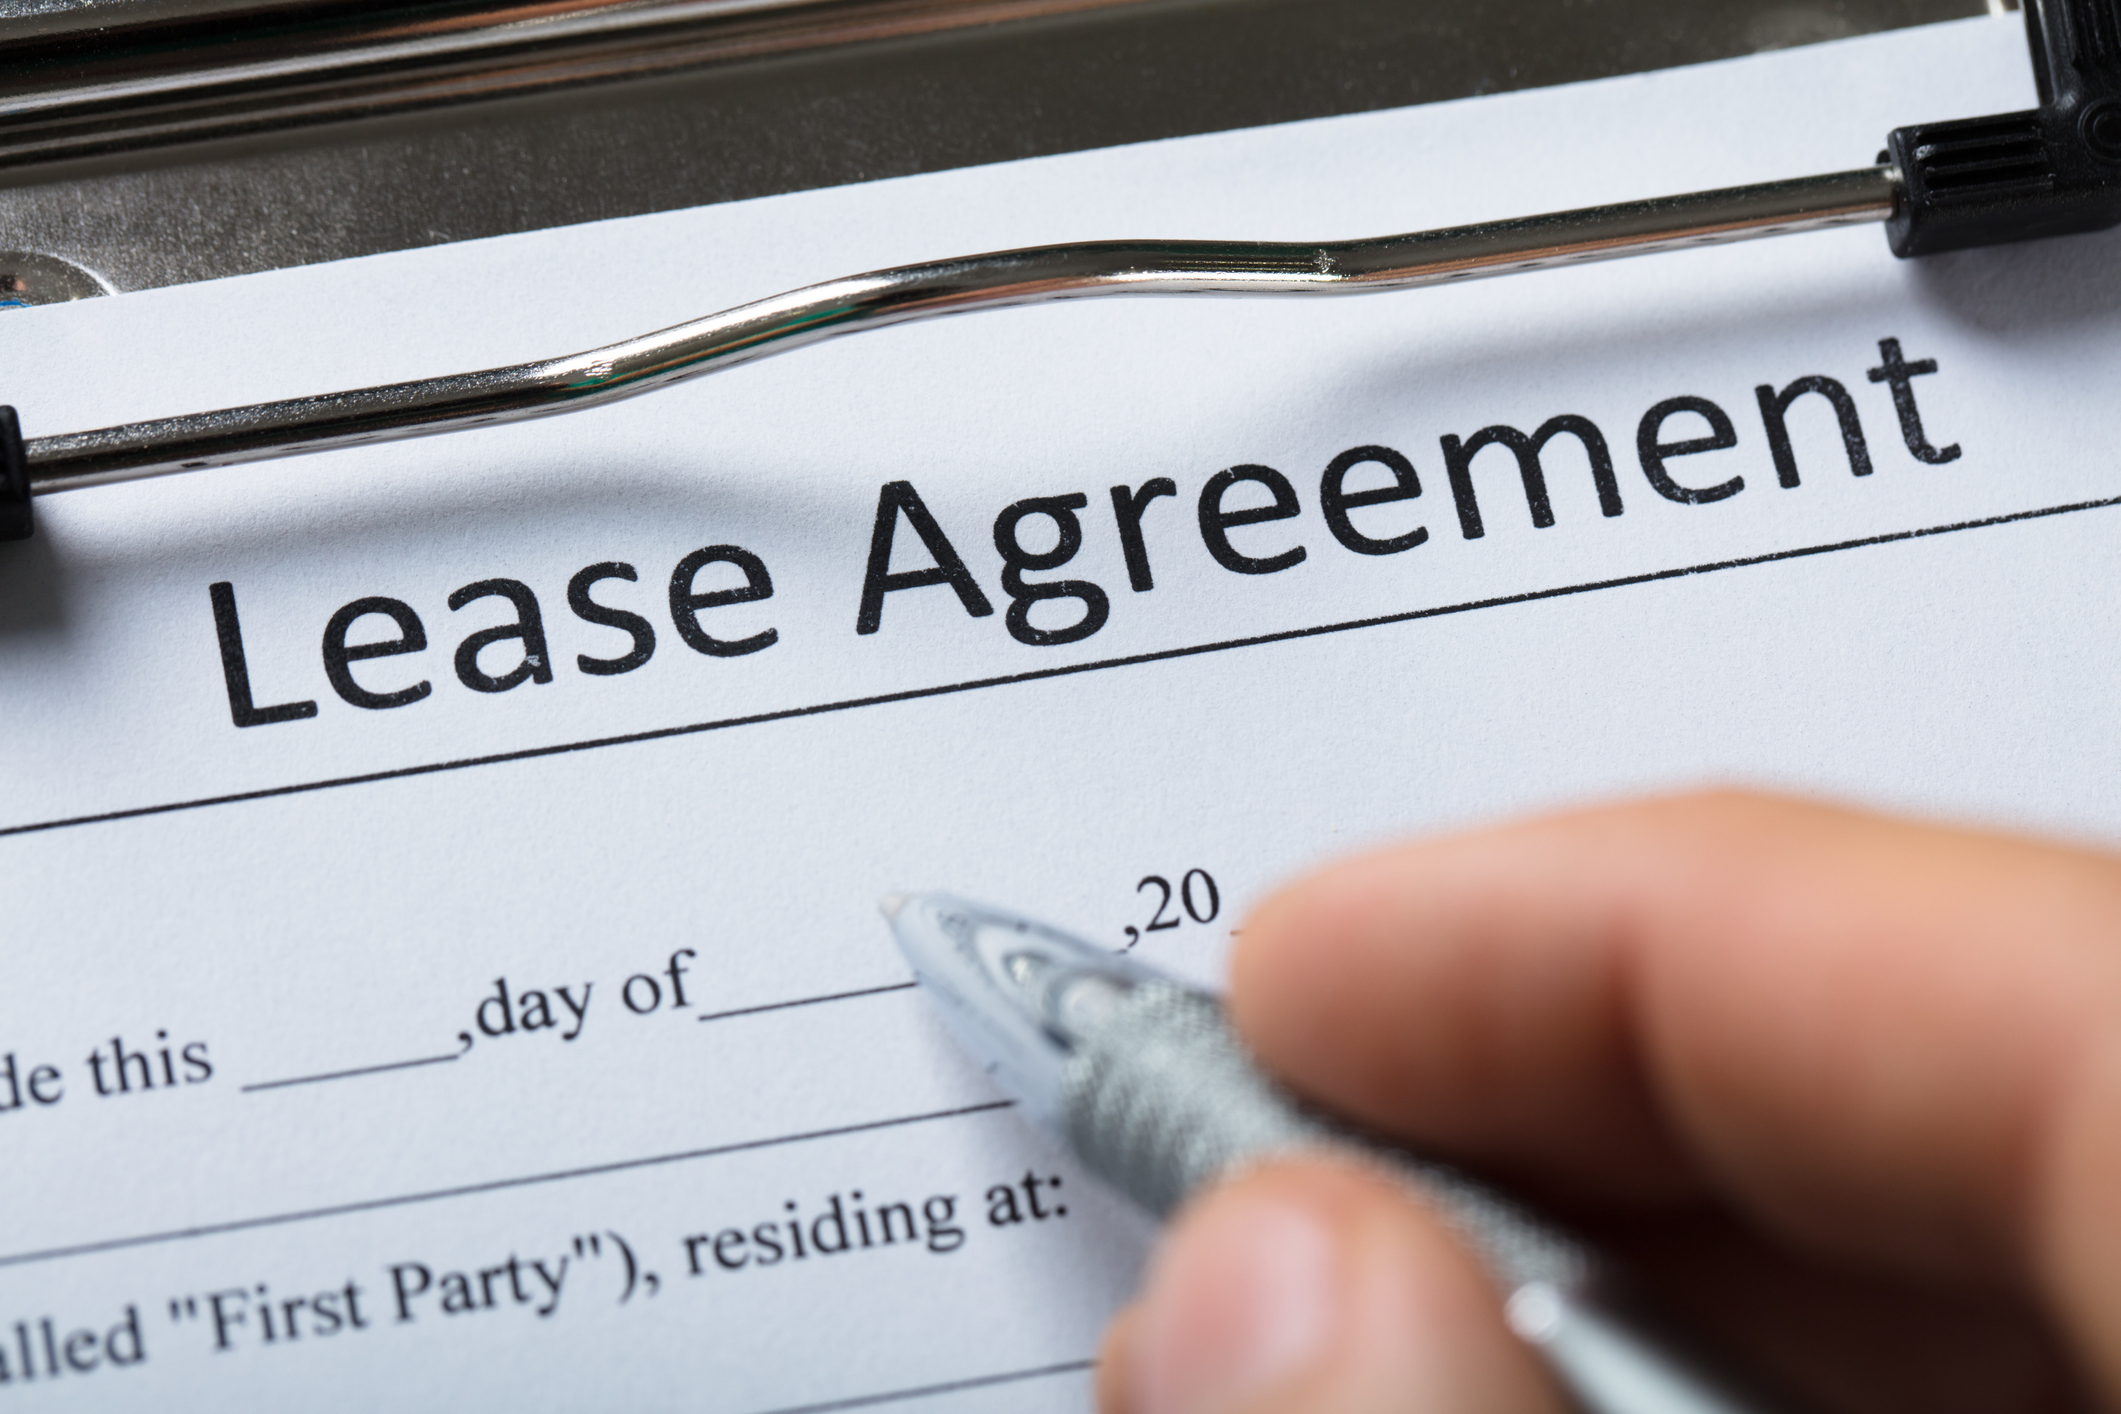 The more specific the lease agreement's language, the clearer the picture.